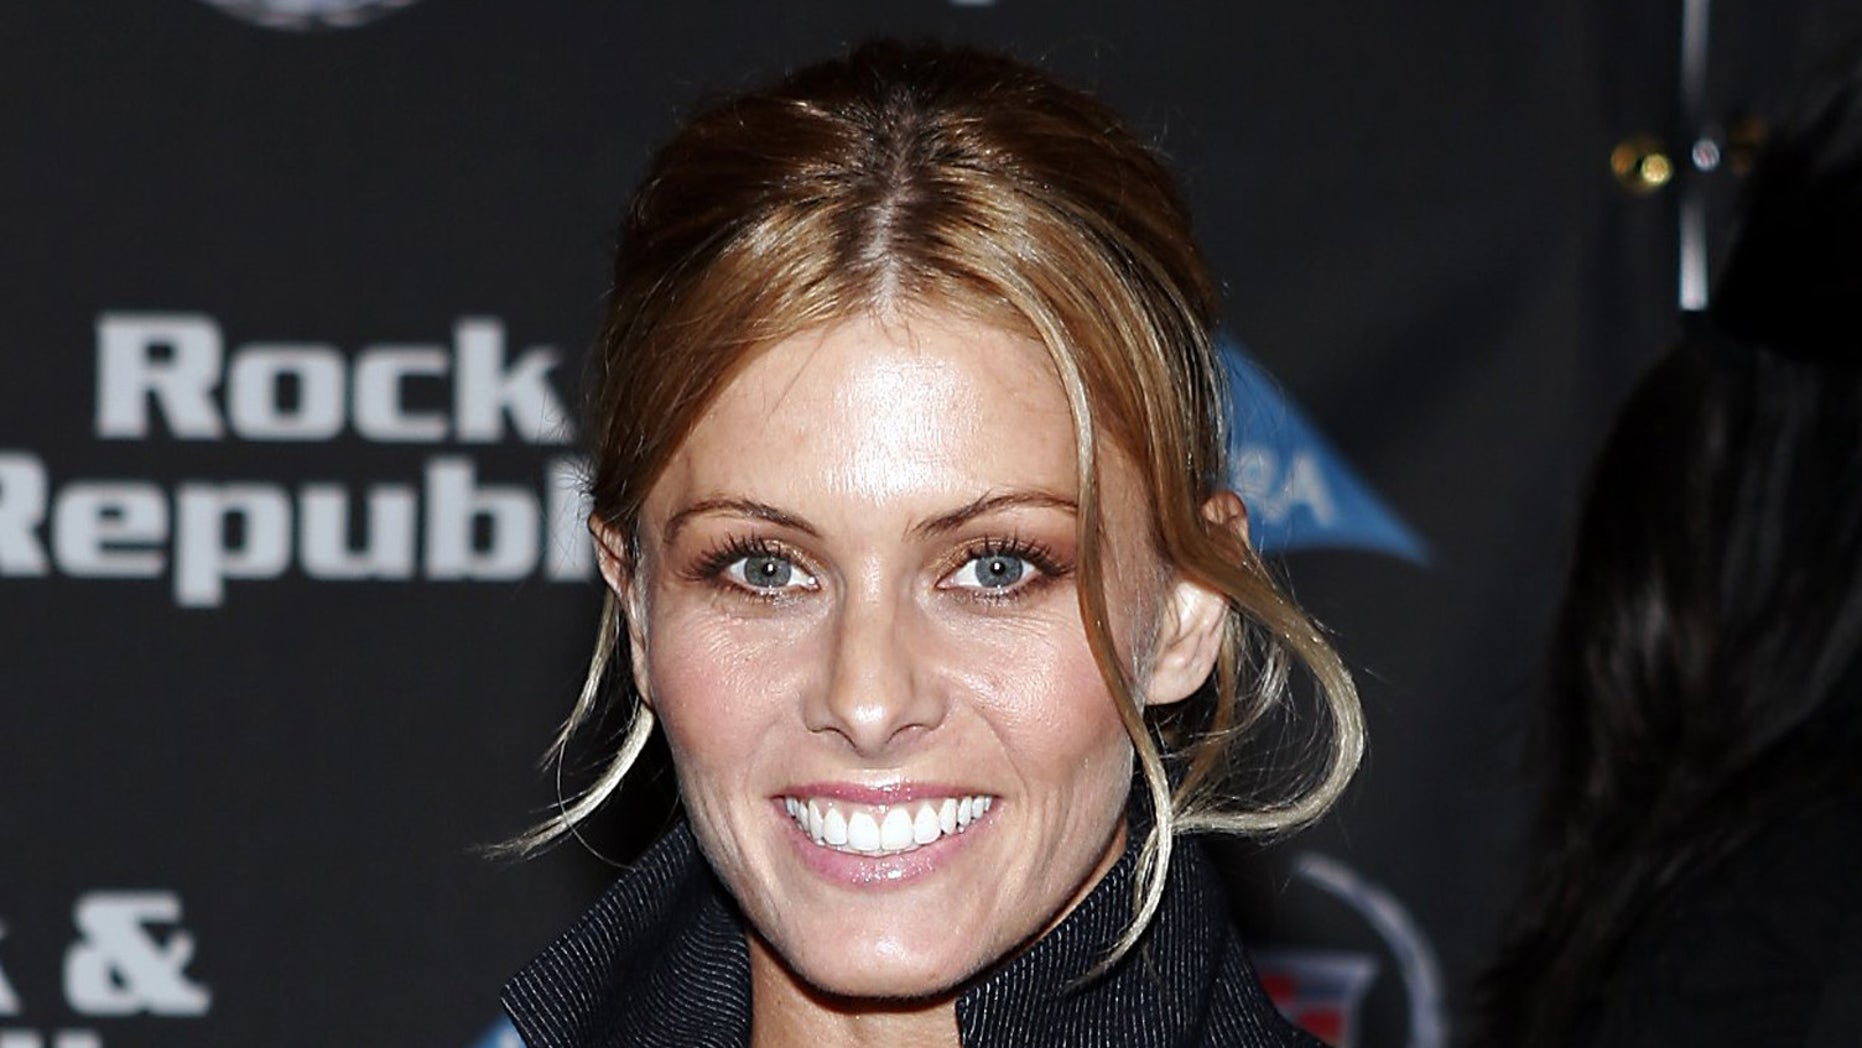 Actress Nicole Eggert arrives at the Cadillac Rock&Republic Fall 2005 Fashion Show at Sony Studios in Culver City, California March 19, 2005. REUTERS/Gene Blevins  GB/CCK - RTR5JCI